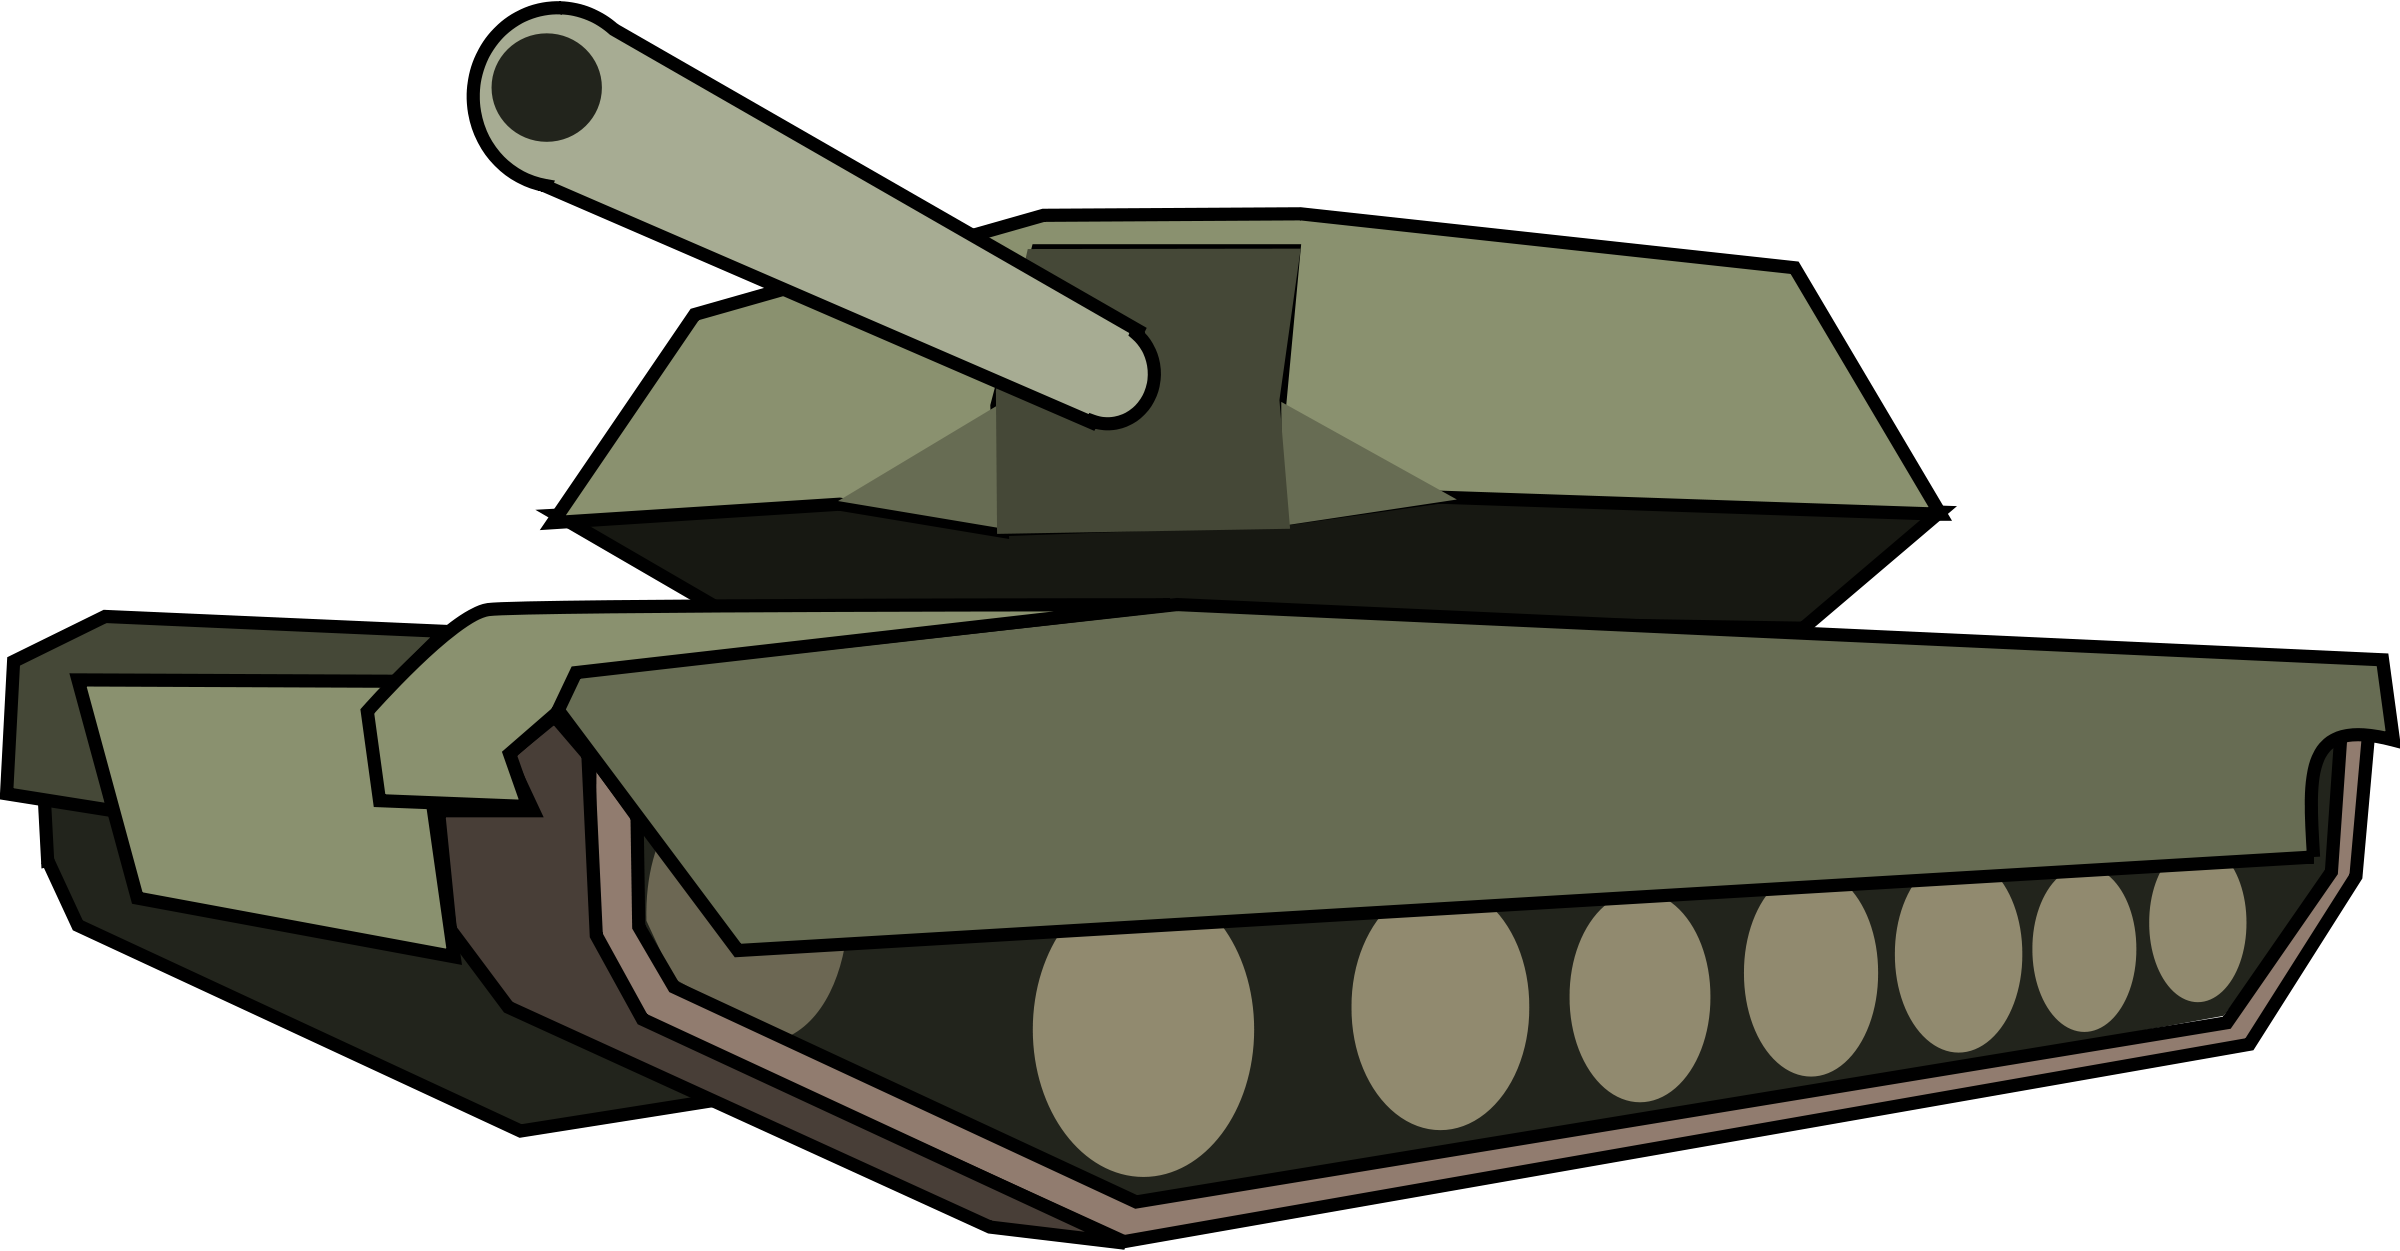 Clipart Tank Clipart Panda Free Clipart Images Free Clip Art Tank Drawing Military Graphics